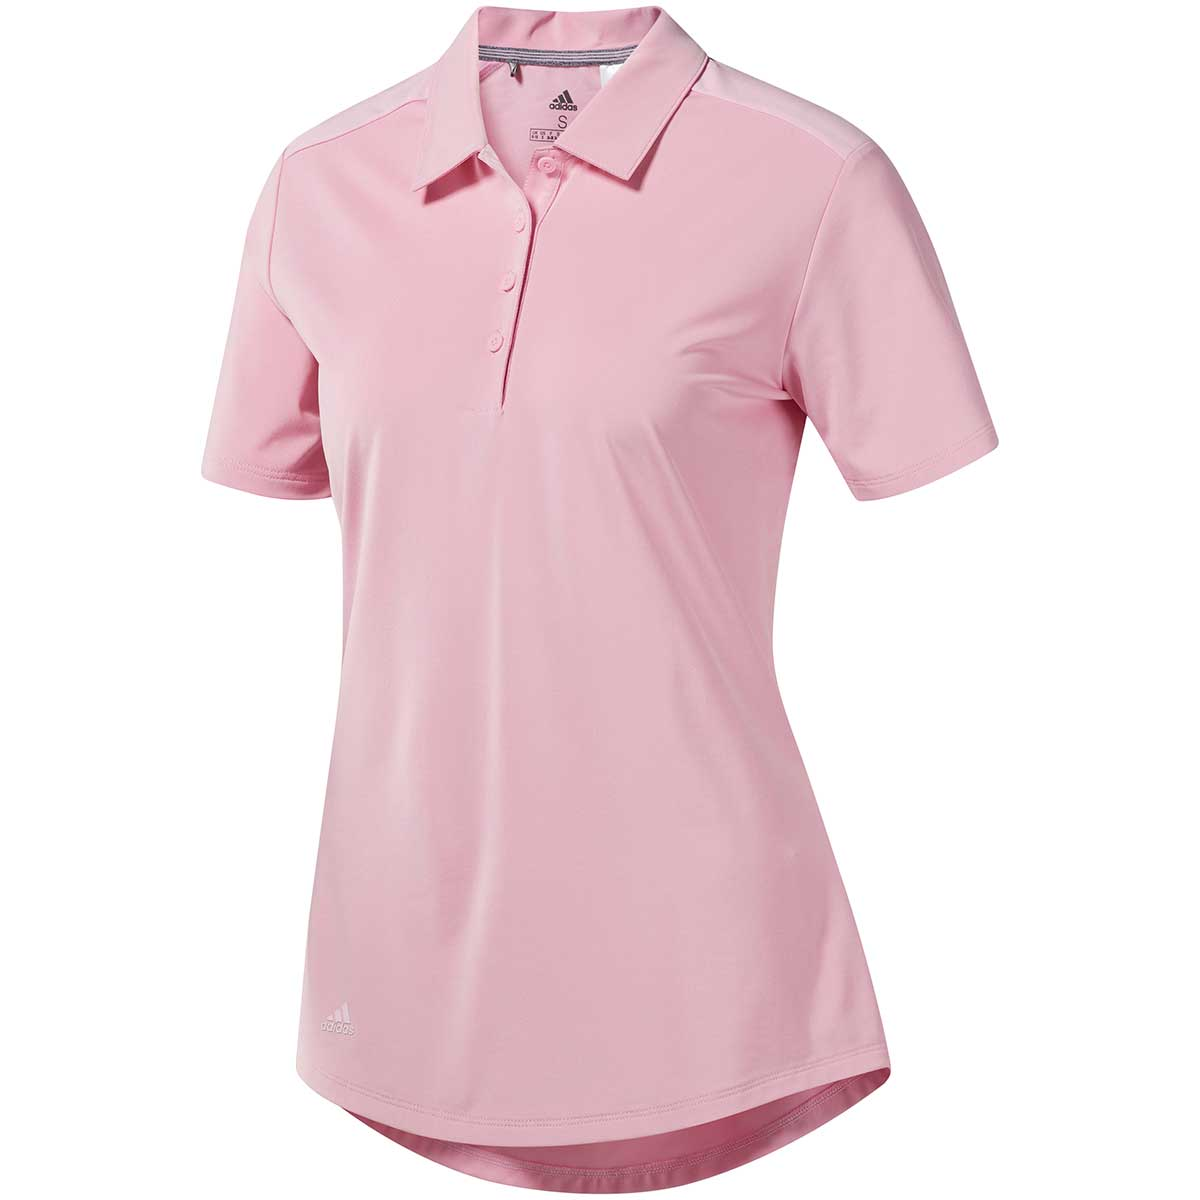 Adidas Women's Ultimate365 Polo Shirt - True Pink